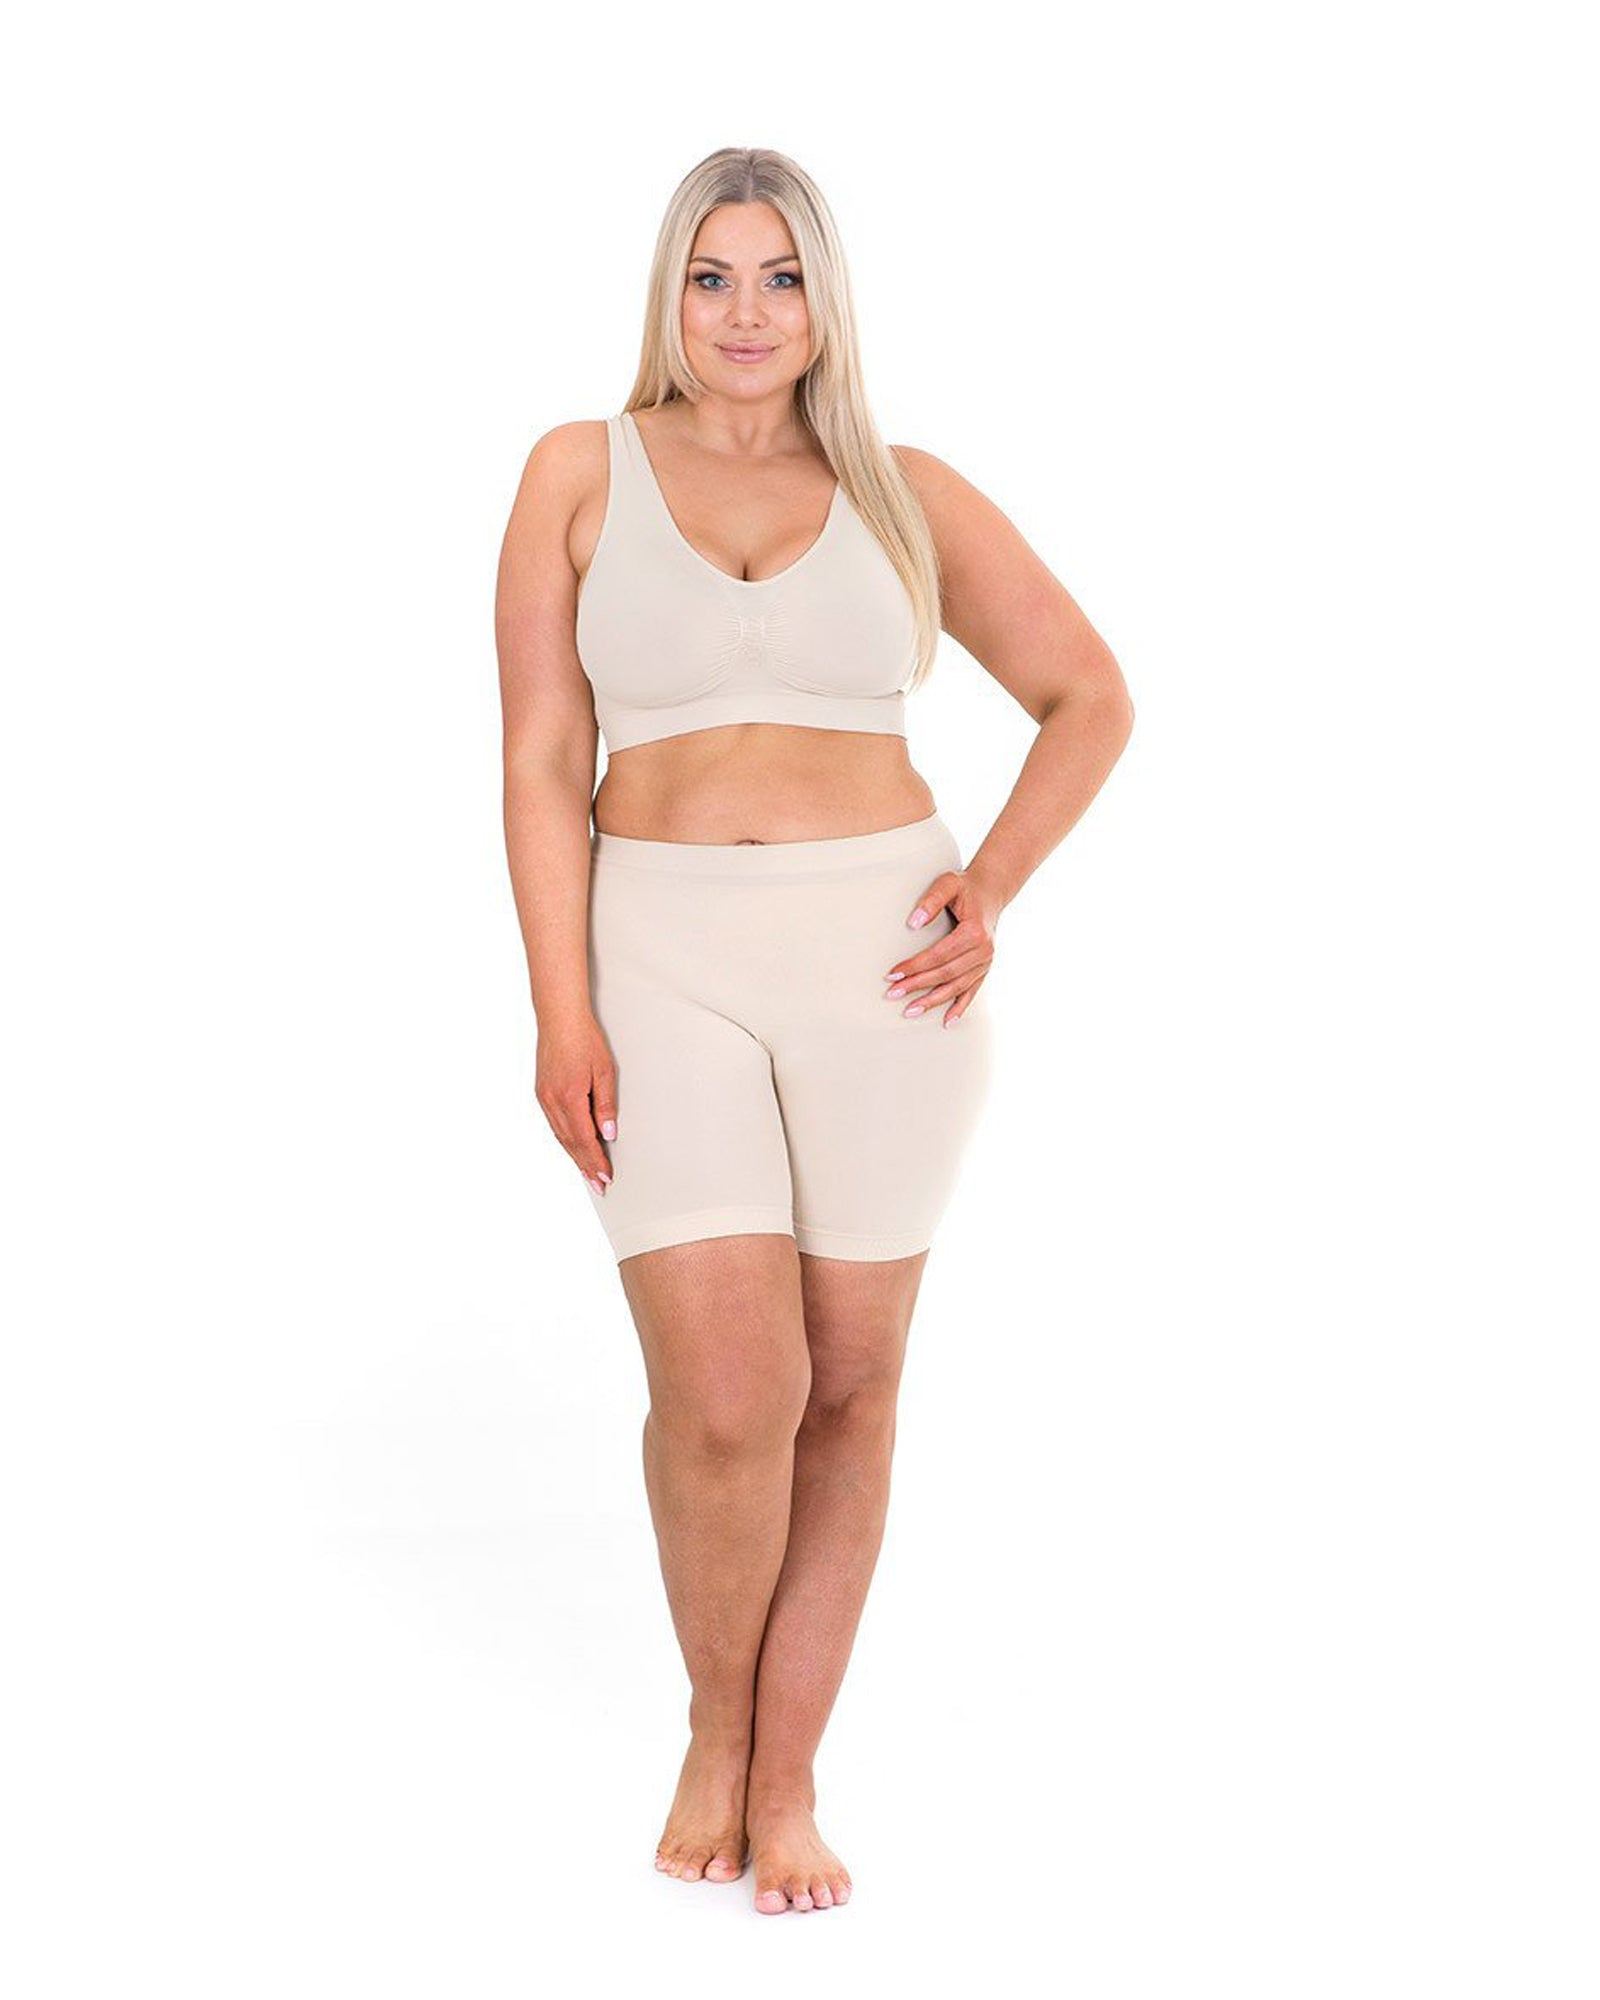 f5c79a0b6b044 Plus Size Clothing sizes 12-26. Free AU Delivery Over  100